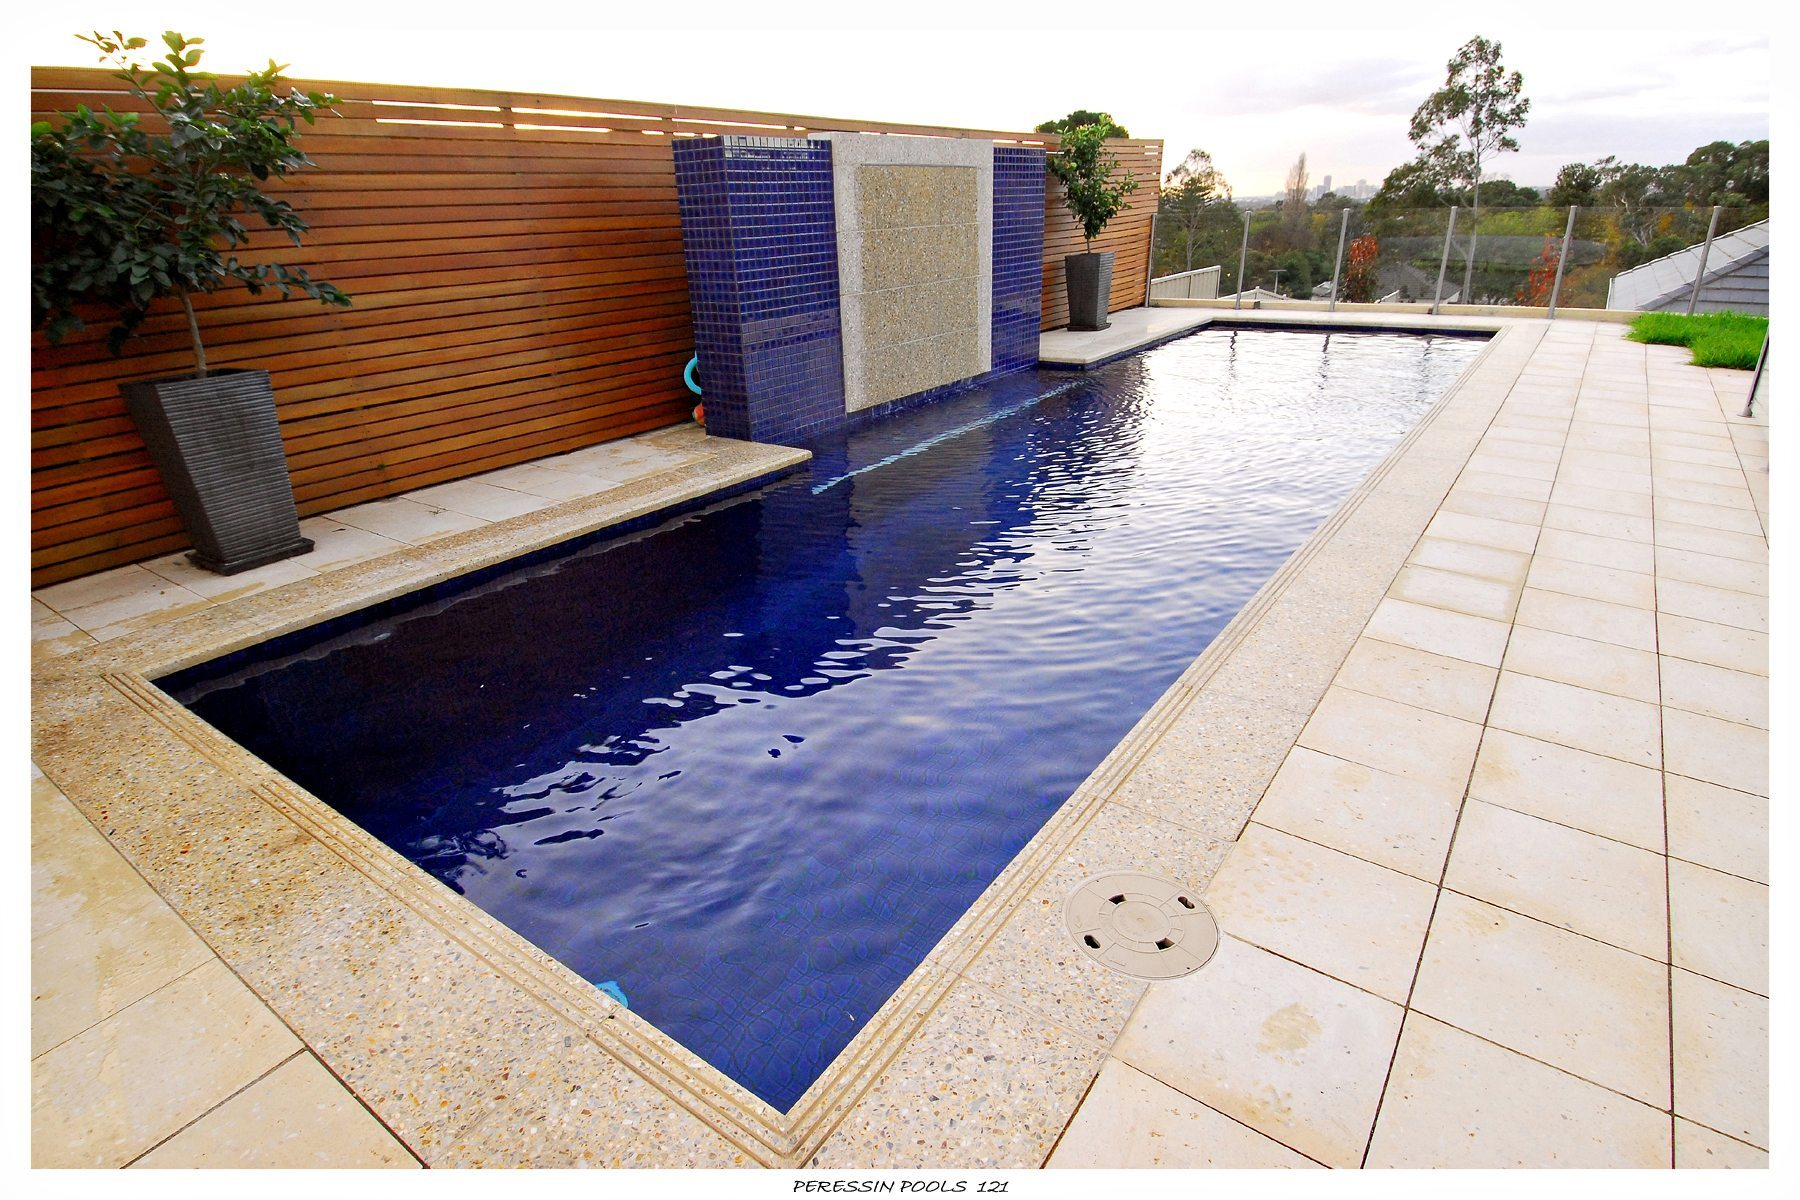 fountain and concrete pool - Rectangle Pool With Water Feature